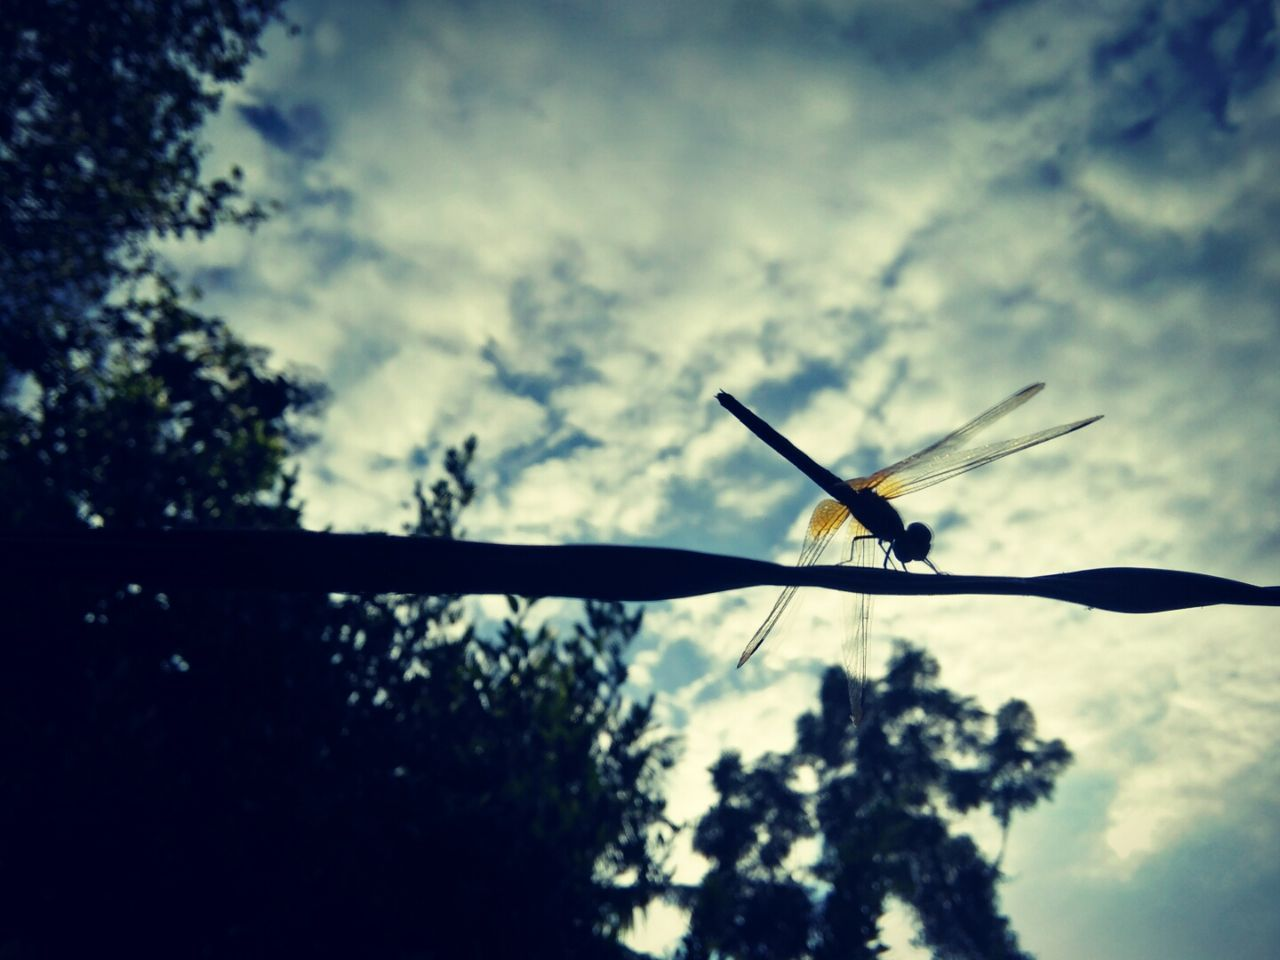 EyeEmNewHere Cloud - Sky Sky No People Outdoors Insect Day Beauty In Nature Close-up Dragonfly Afternoon